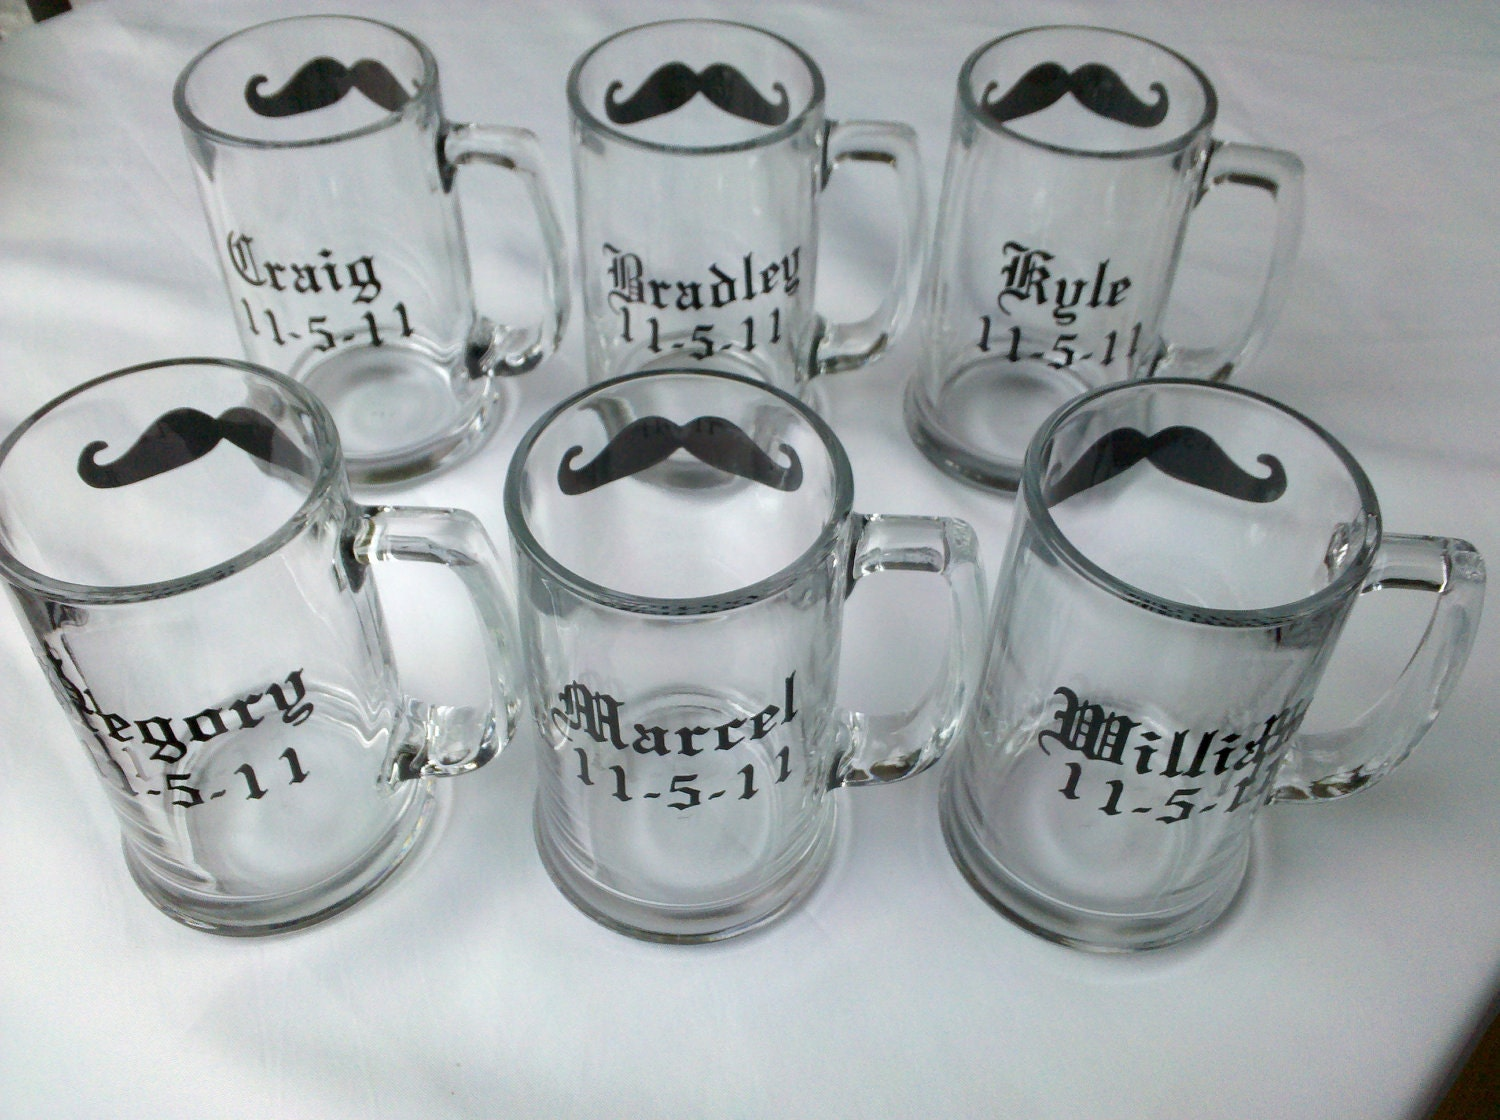 Gift for Groomsmen beer mugs, 6 Chalkboard mustache mugs personalized with name and wedding date